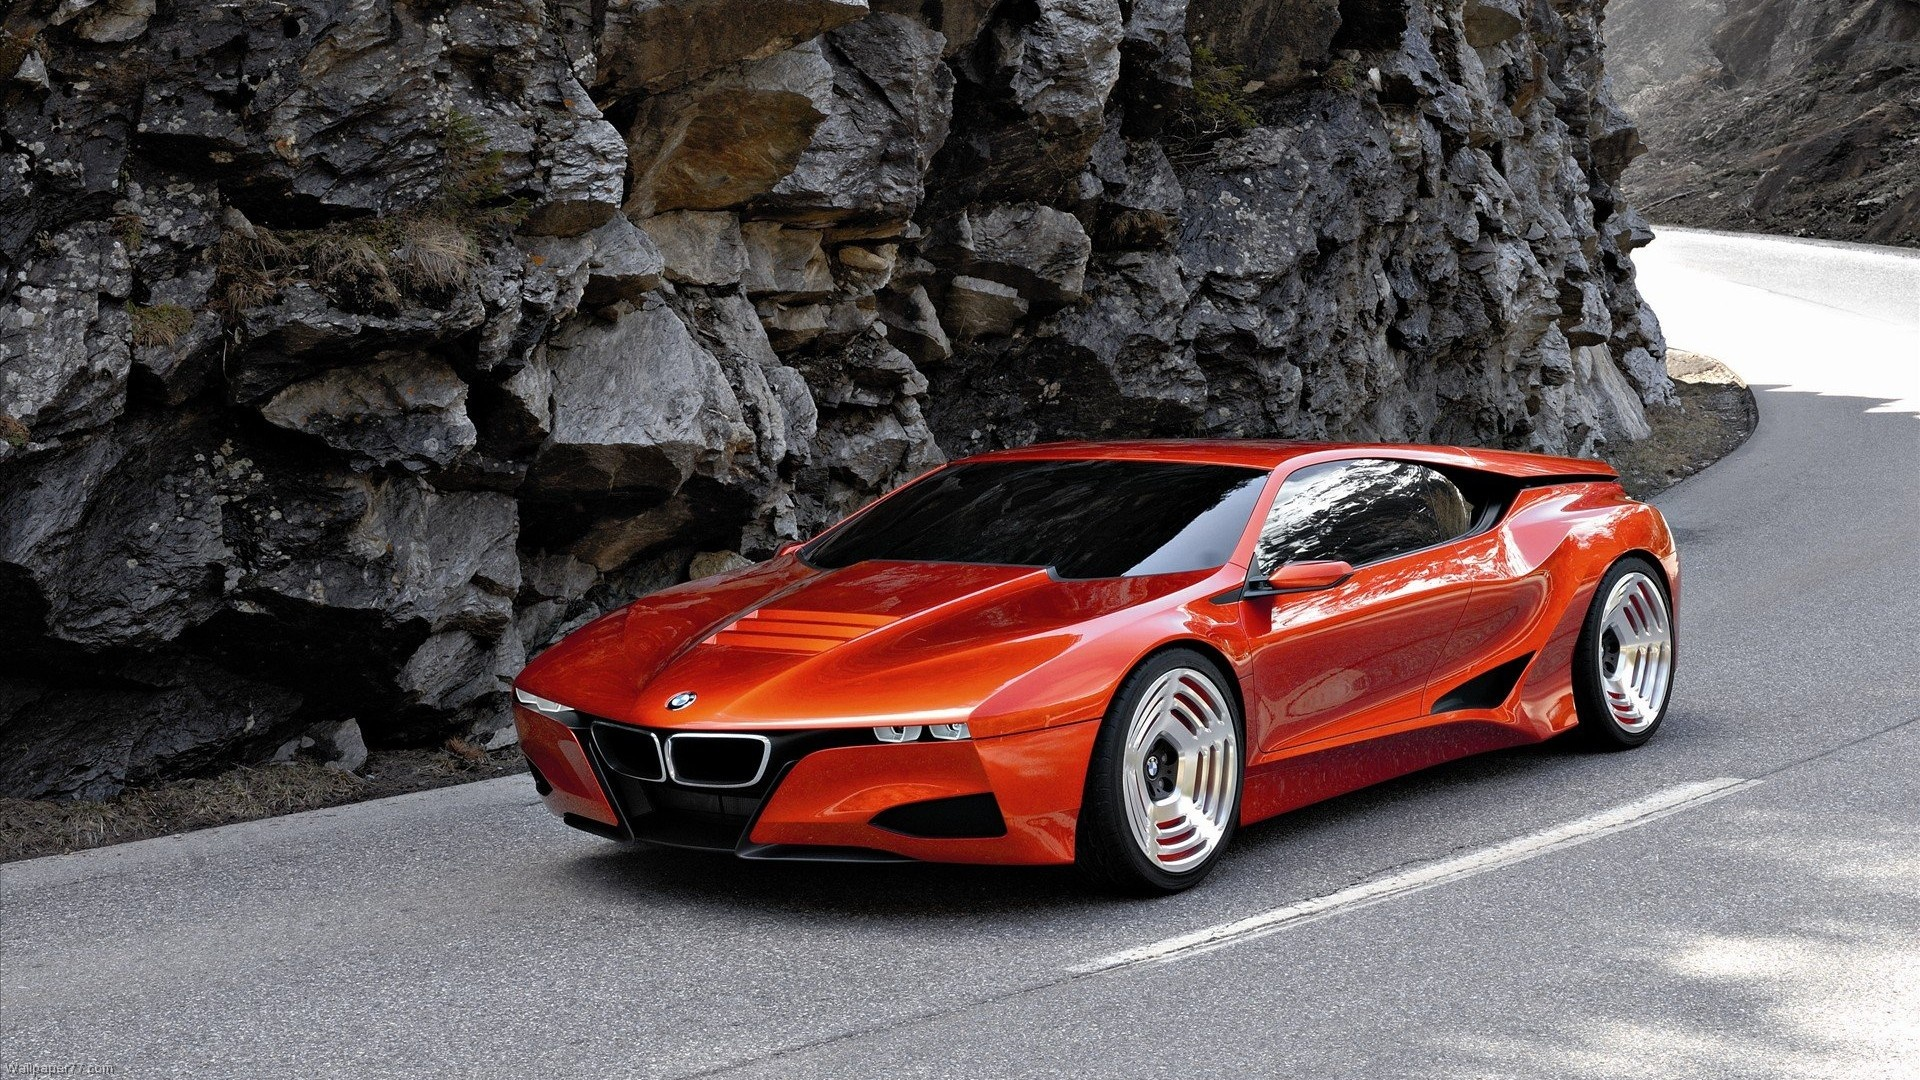 Bmw Car Wallpaper Lovely Best Bmw Wallpapers for Desktop Tablets In Hd for Download Of Elegant Bmw Car Wallpaper